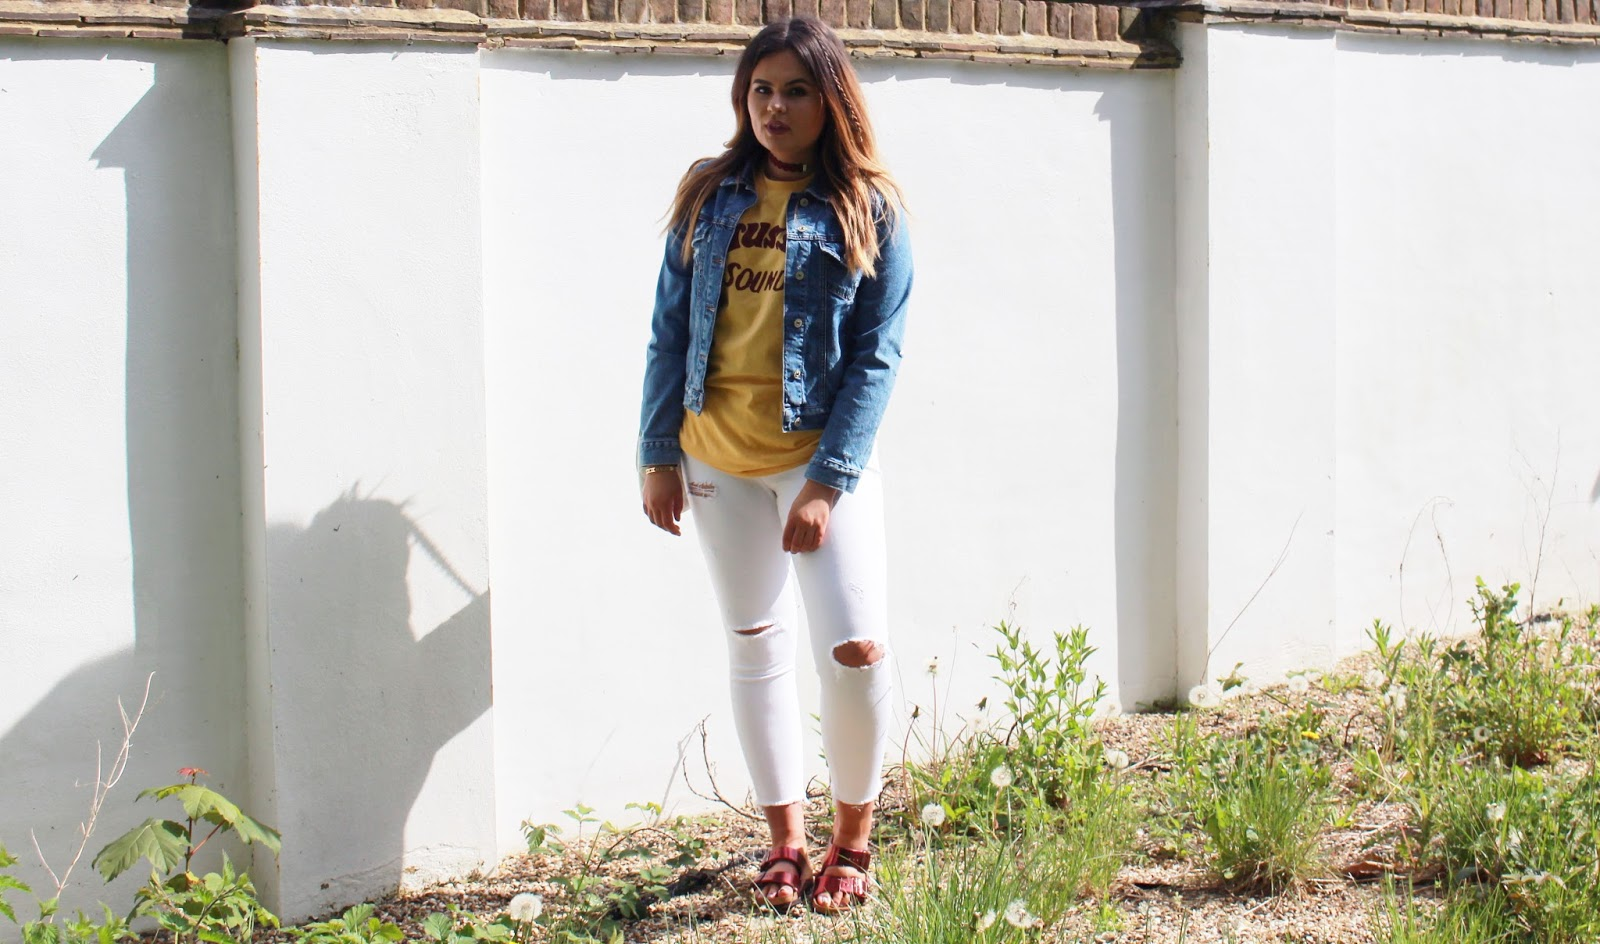 streetwear, stussy ss16, mango bowie jacket, vintage denim jacket, agolde jeans blogpost, summer casual outfit